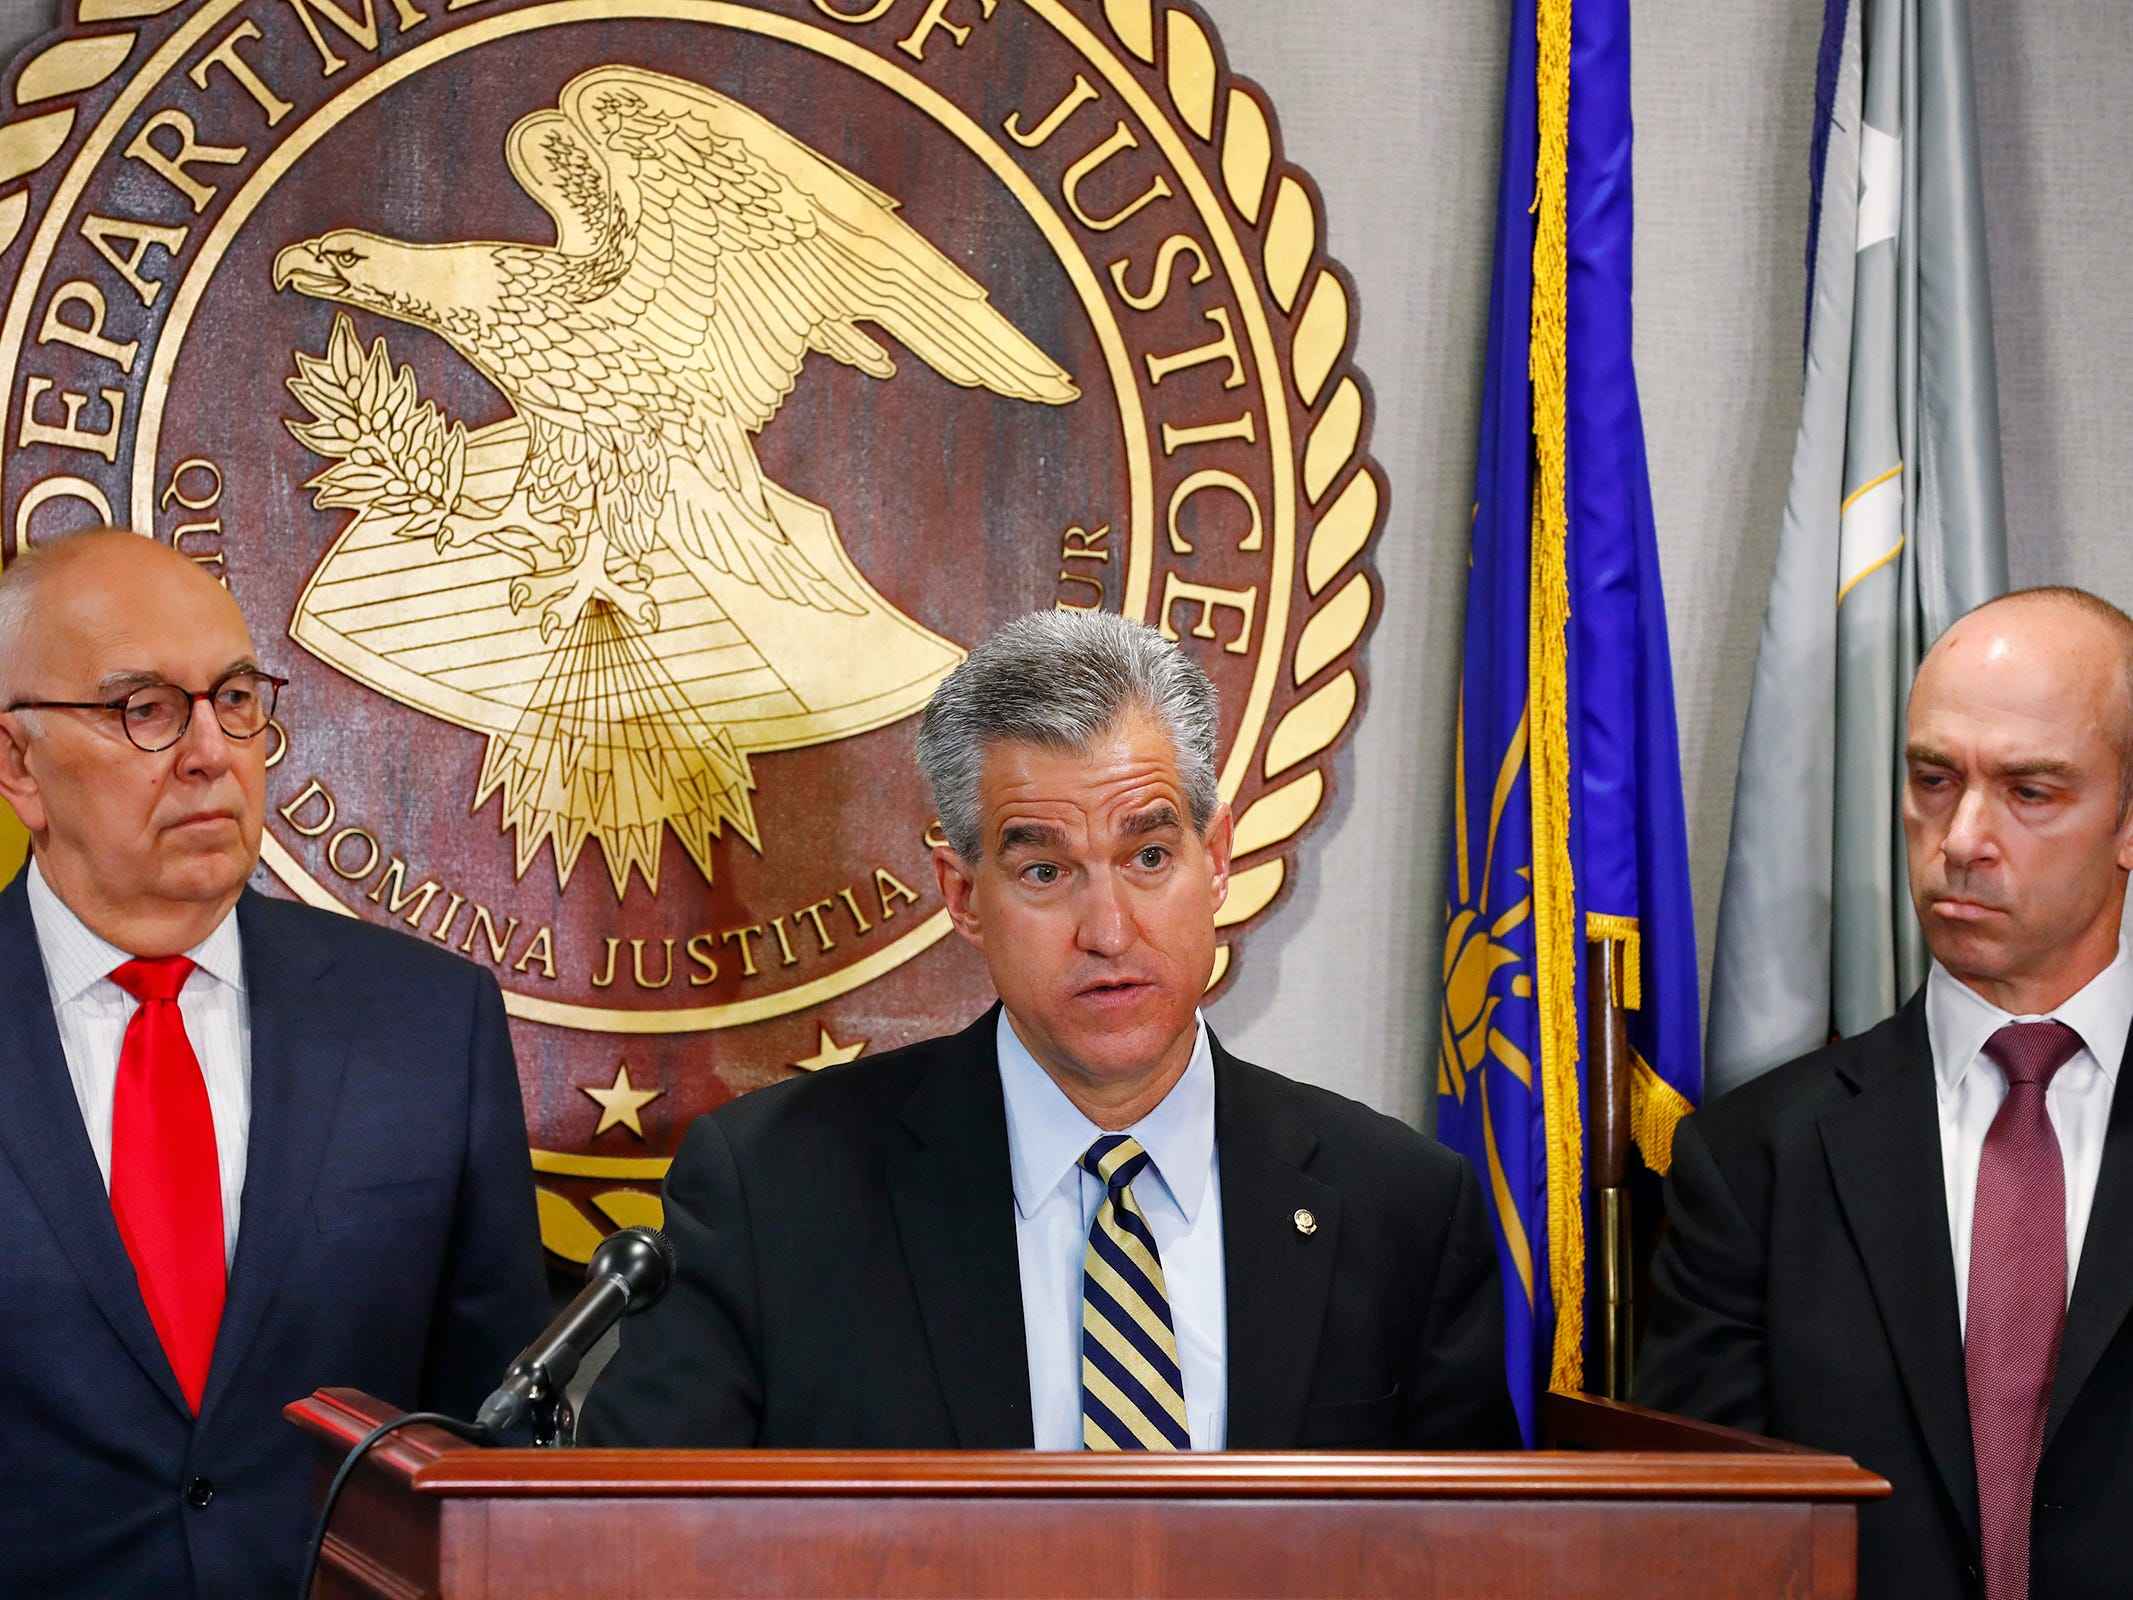 "U.S. Attorney for the Southern District of Indiana Josh Minkler, center, flanked by Marion County Prosecutor Terry Curry, left, and FBI Special Agent in Charge Grant Mendenhall, right, speaks during a press conference at the U.S. Attorney's office, Thursday, Oct. 11, 2018.  U.S. Attorney Minkler, the FBI, Indiana State Police, and the State Board of Accounts release details about joint operation in a crackdown involving ""state-wide corruption,"" from Operation Public Accountability."